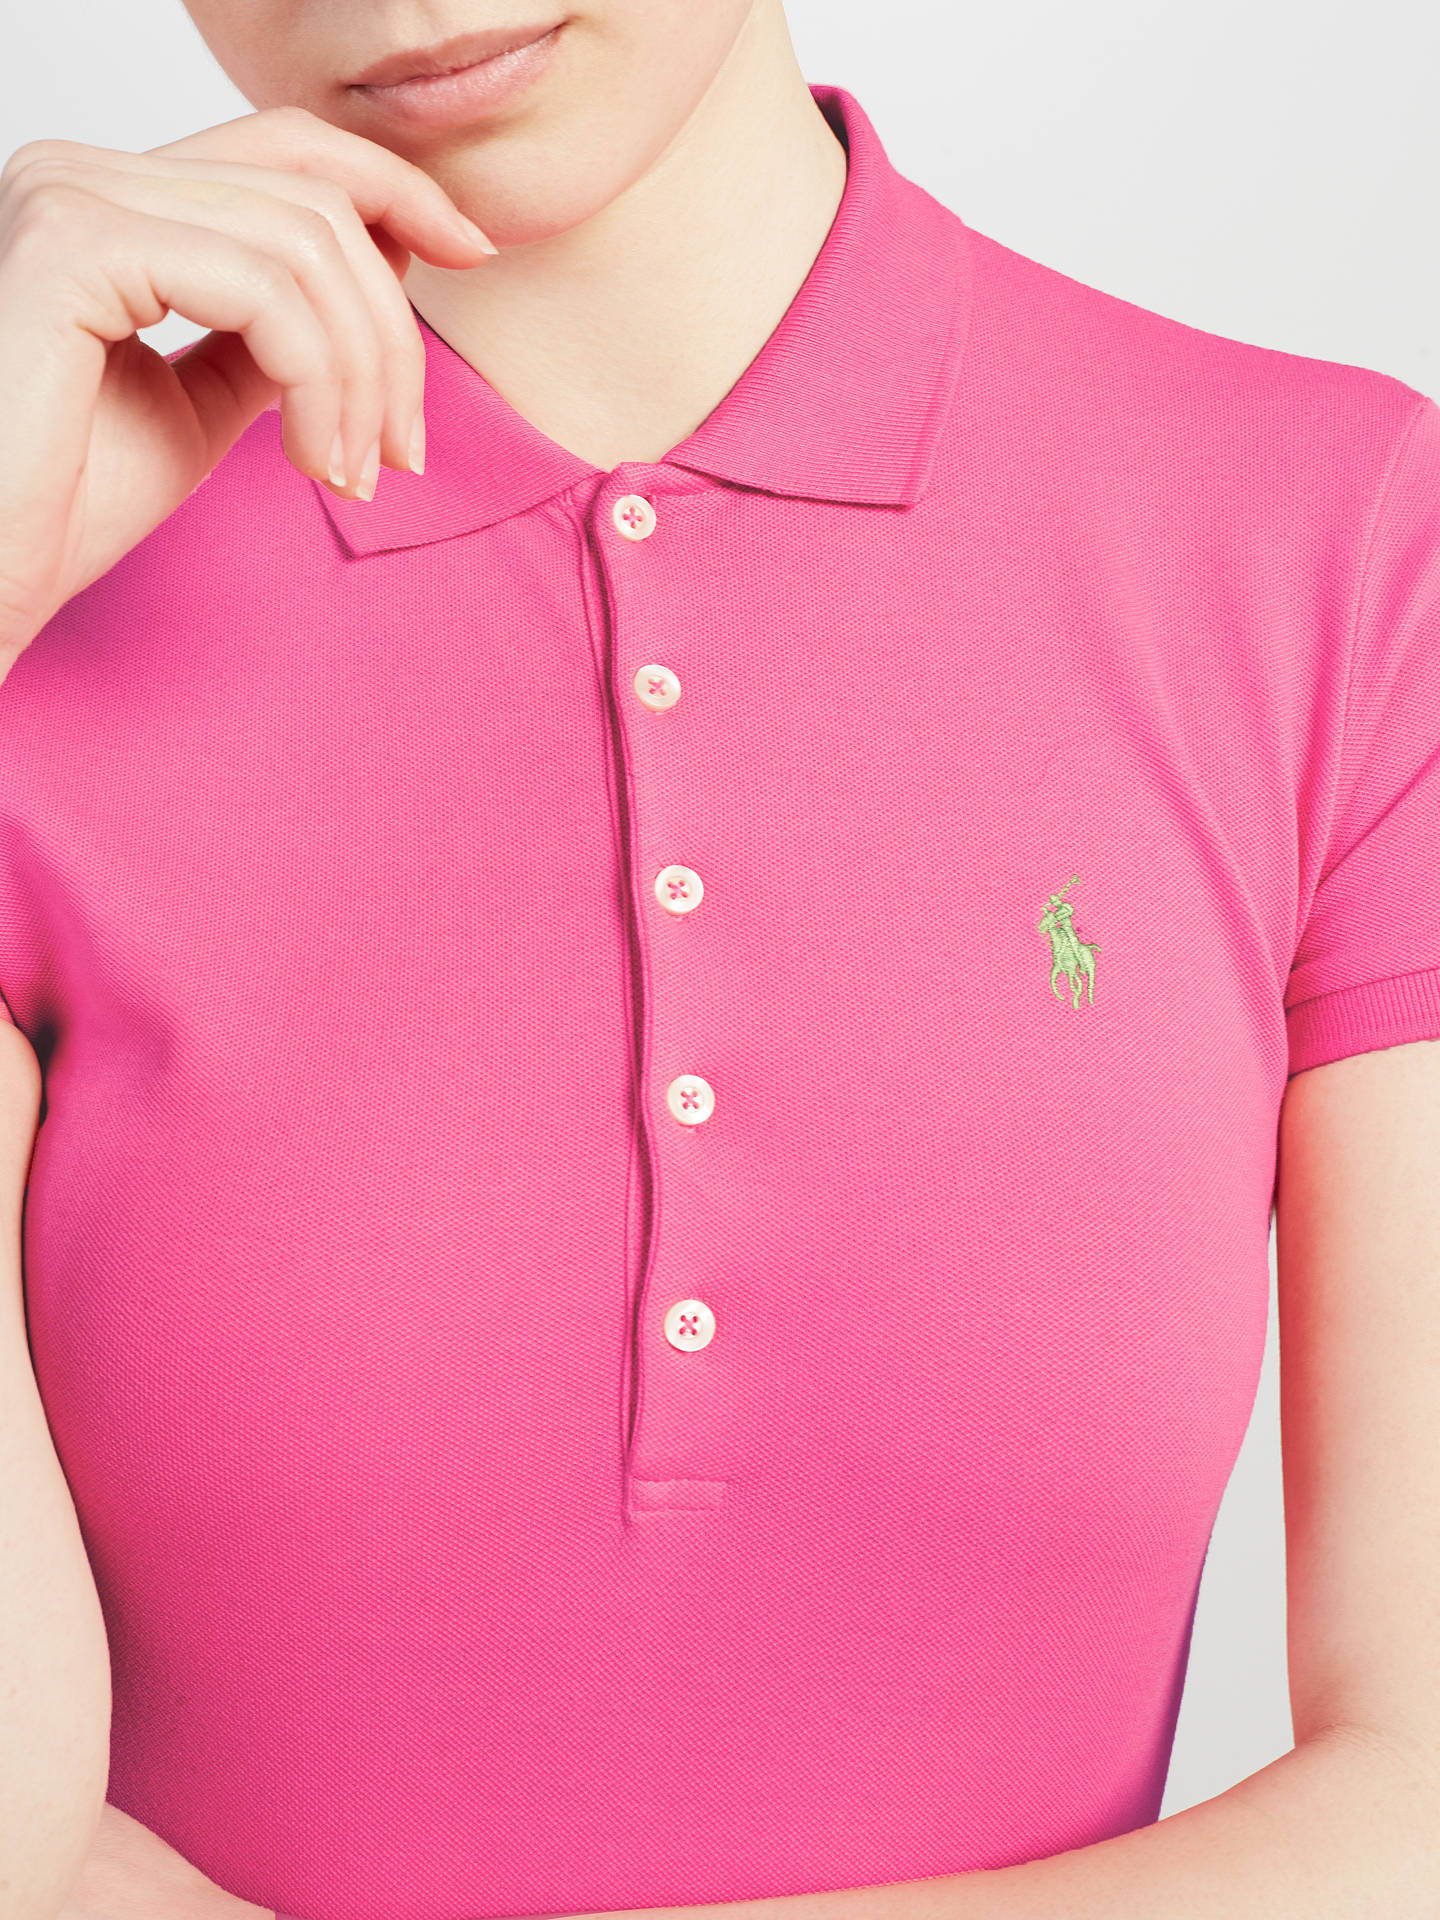 Buy Polo Ralph Lauren Julie Skinny Fit Stretch Polo Shirt, Baja Pink, XS Online at johnlewis.com